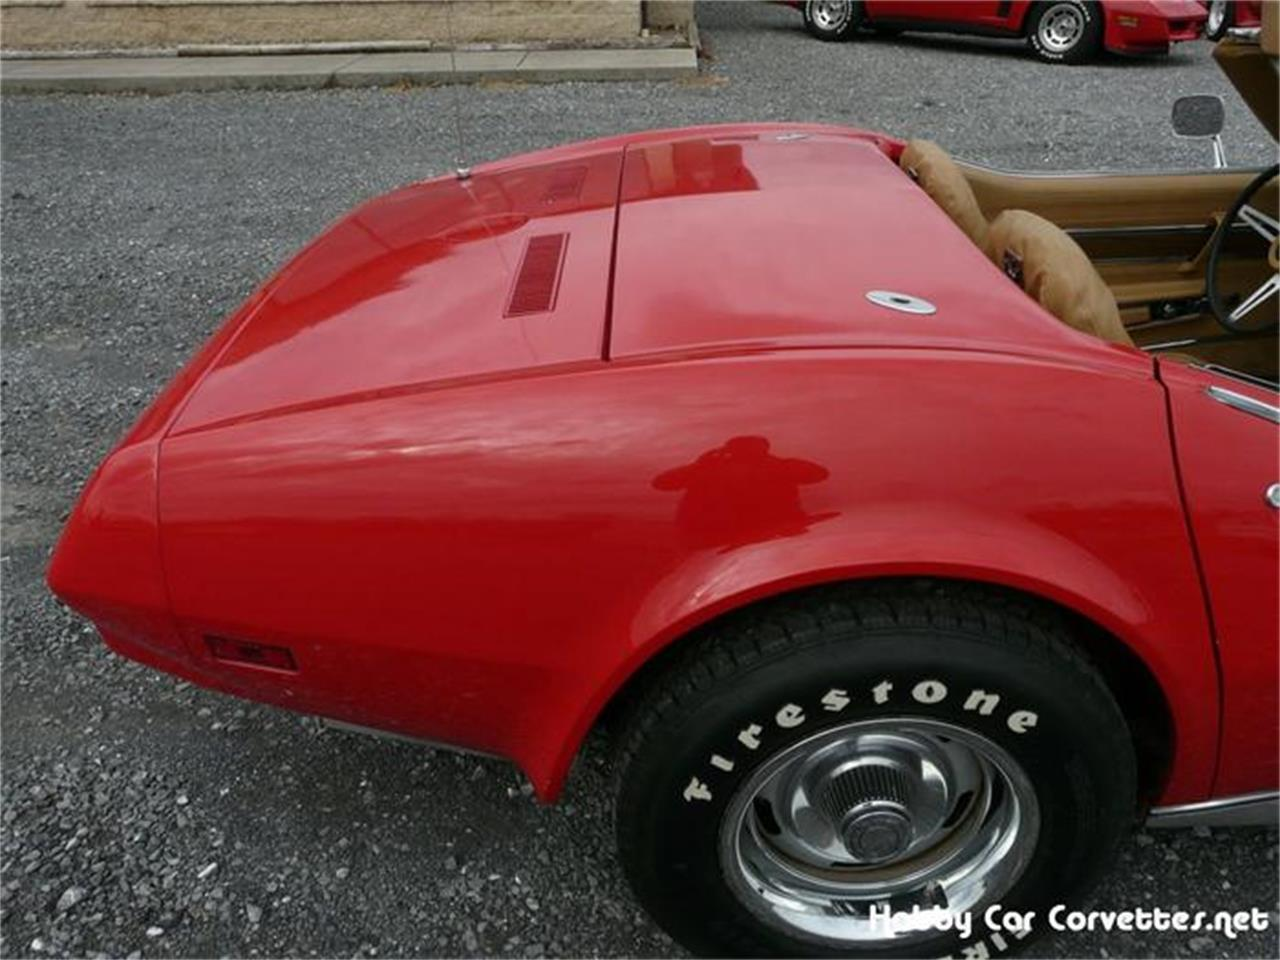 Large Picture of '74 Chevrolet Corvette located in Martinsburg Pennsylvania - $29,999.00 - 8P2J